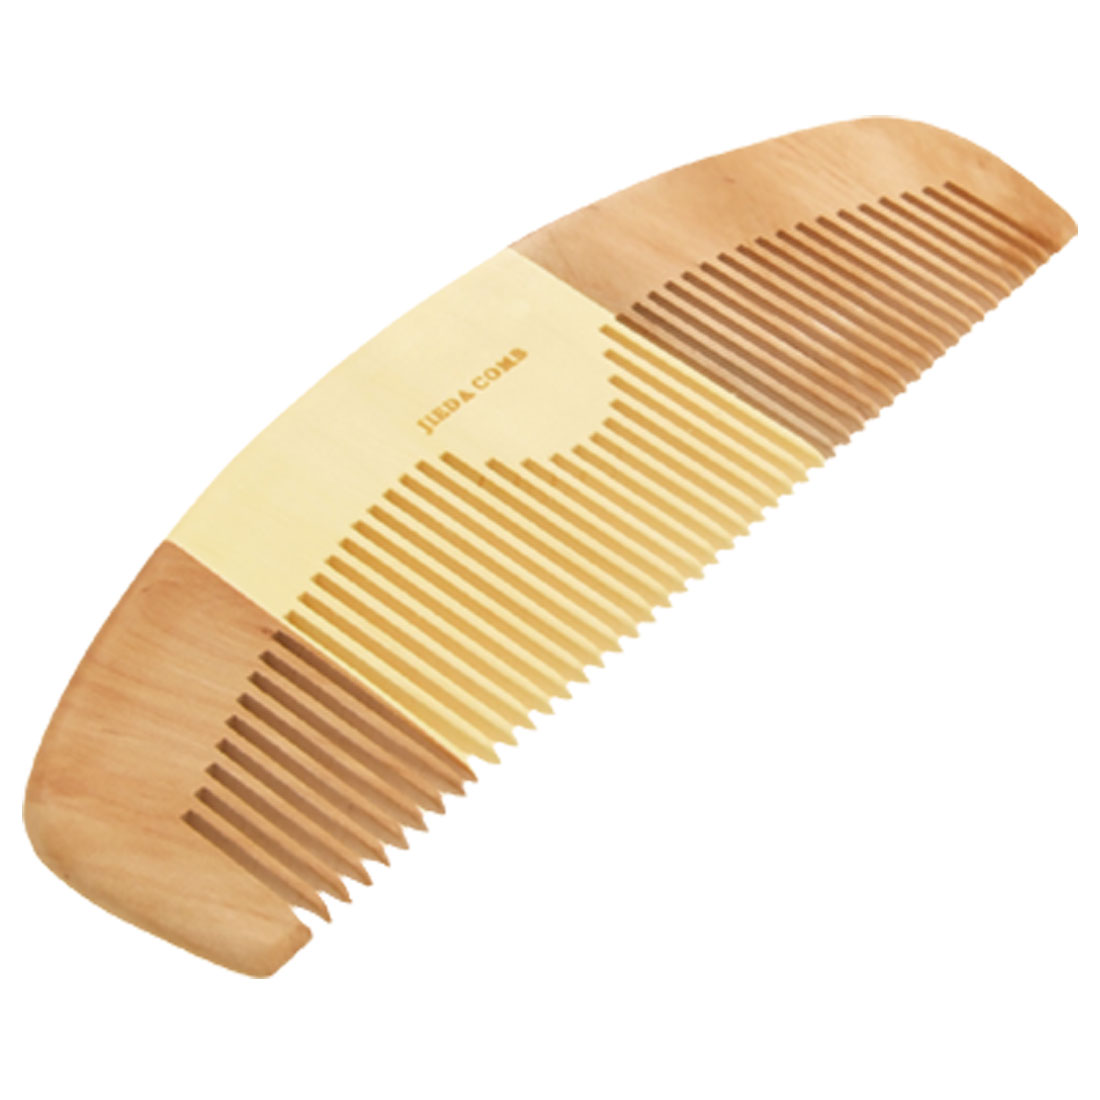 Chinese Culture Half-Moon Shape Wooden Comb Brand New